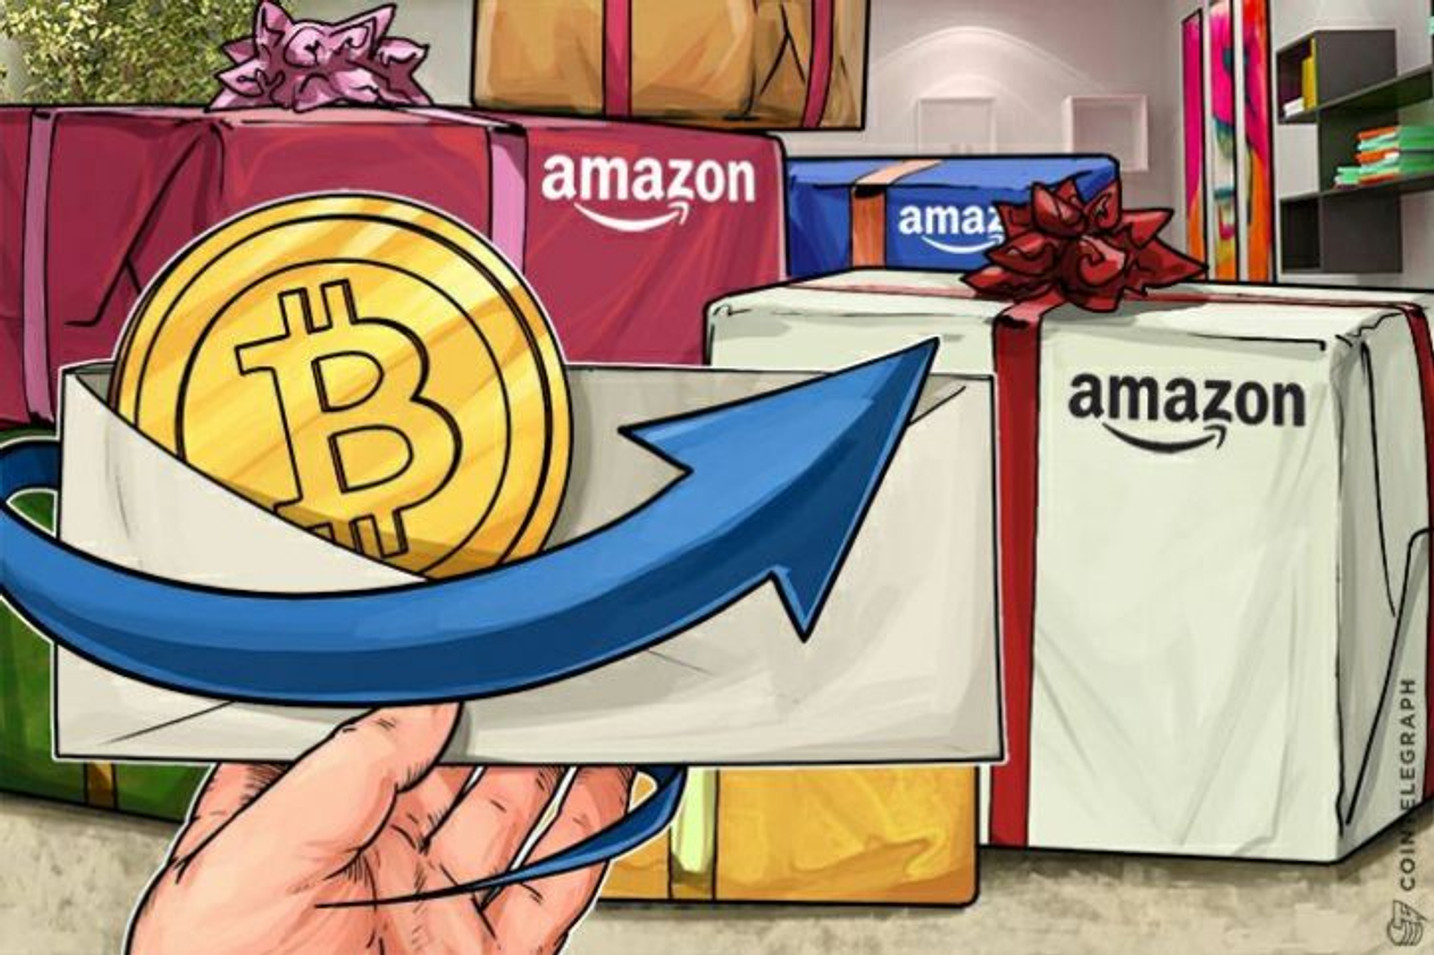 Unverified Rumor Circulating That Amazon May Accept Bitcoin By October